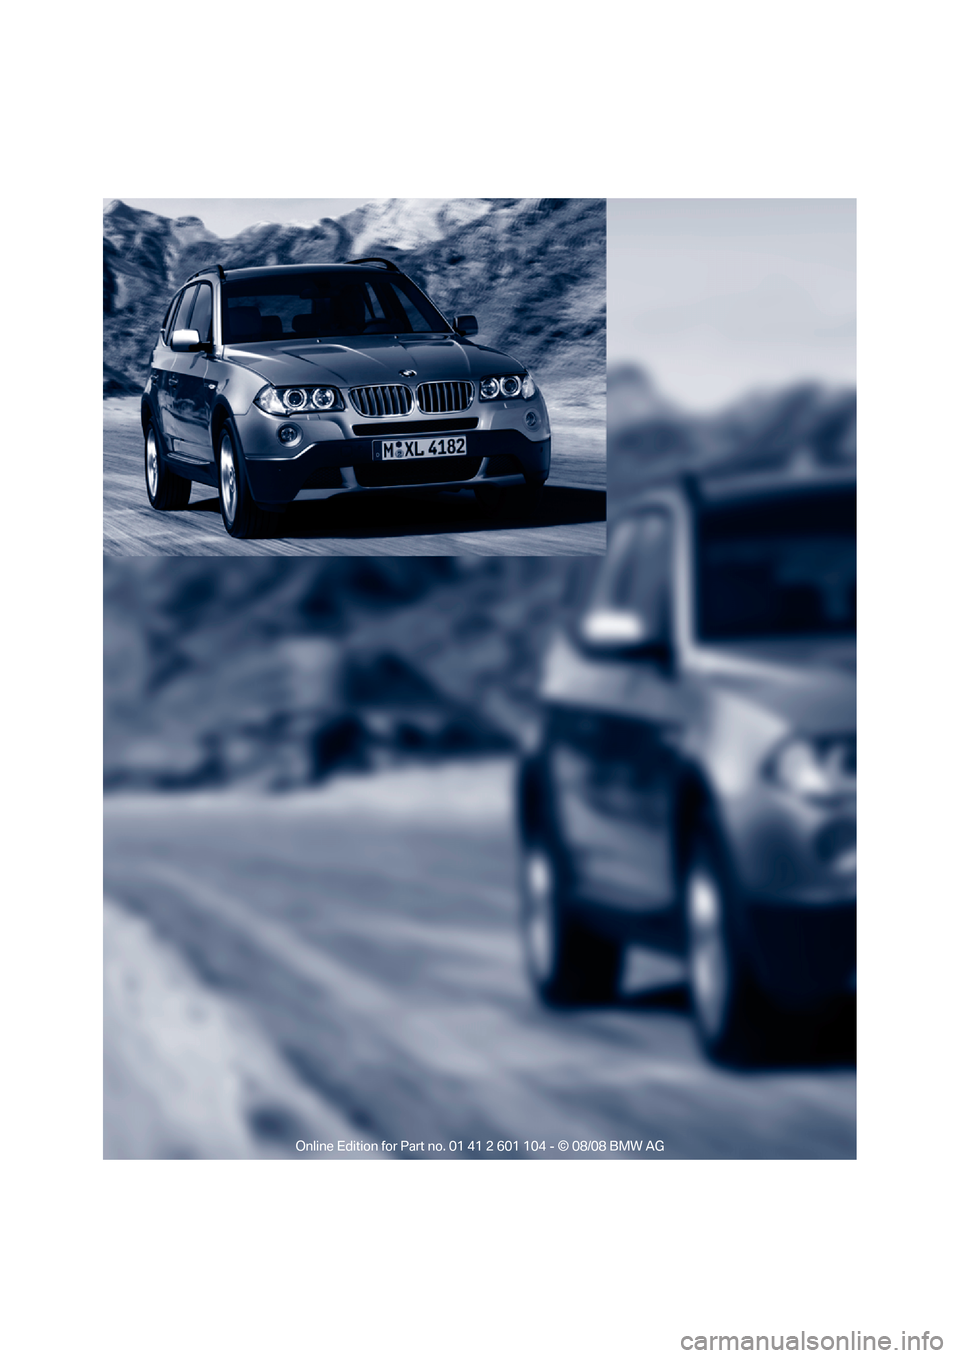 BMW X3 XDRIVE 30I 2009 E83 Owners Manual, Page 10